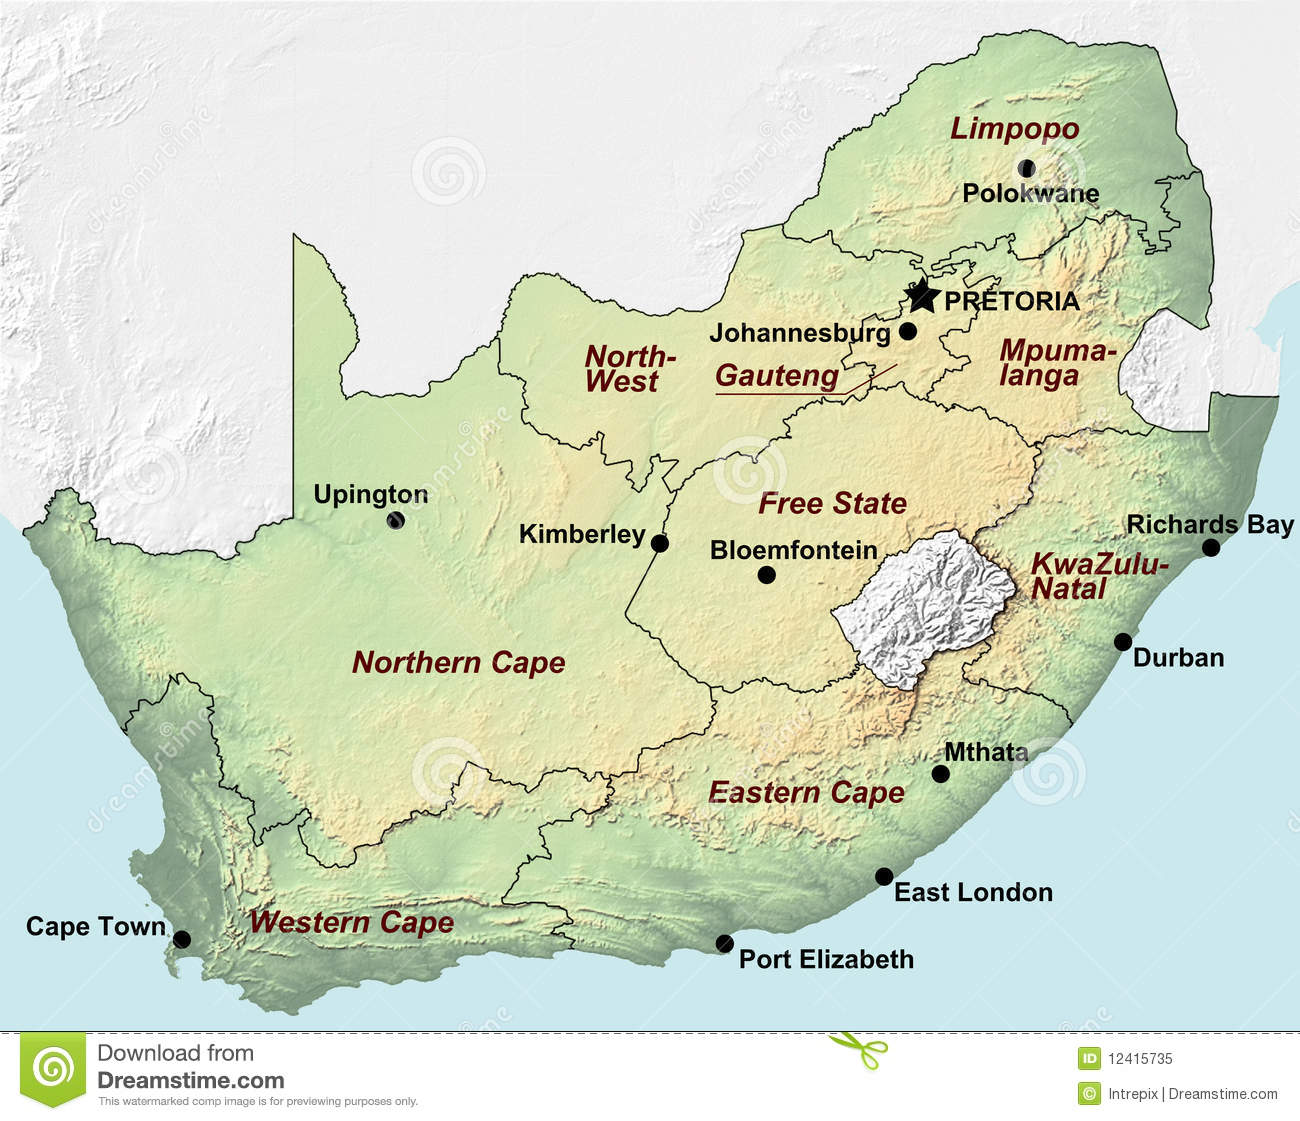 East london eastern cape dating 6